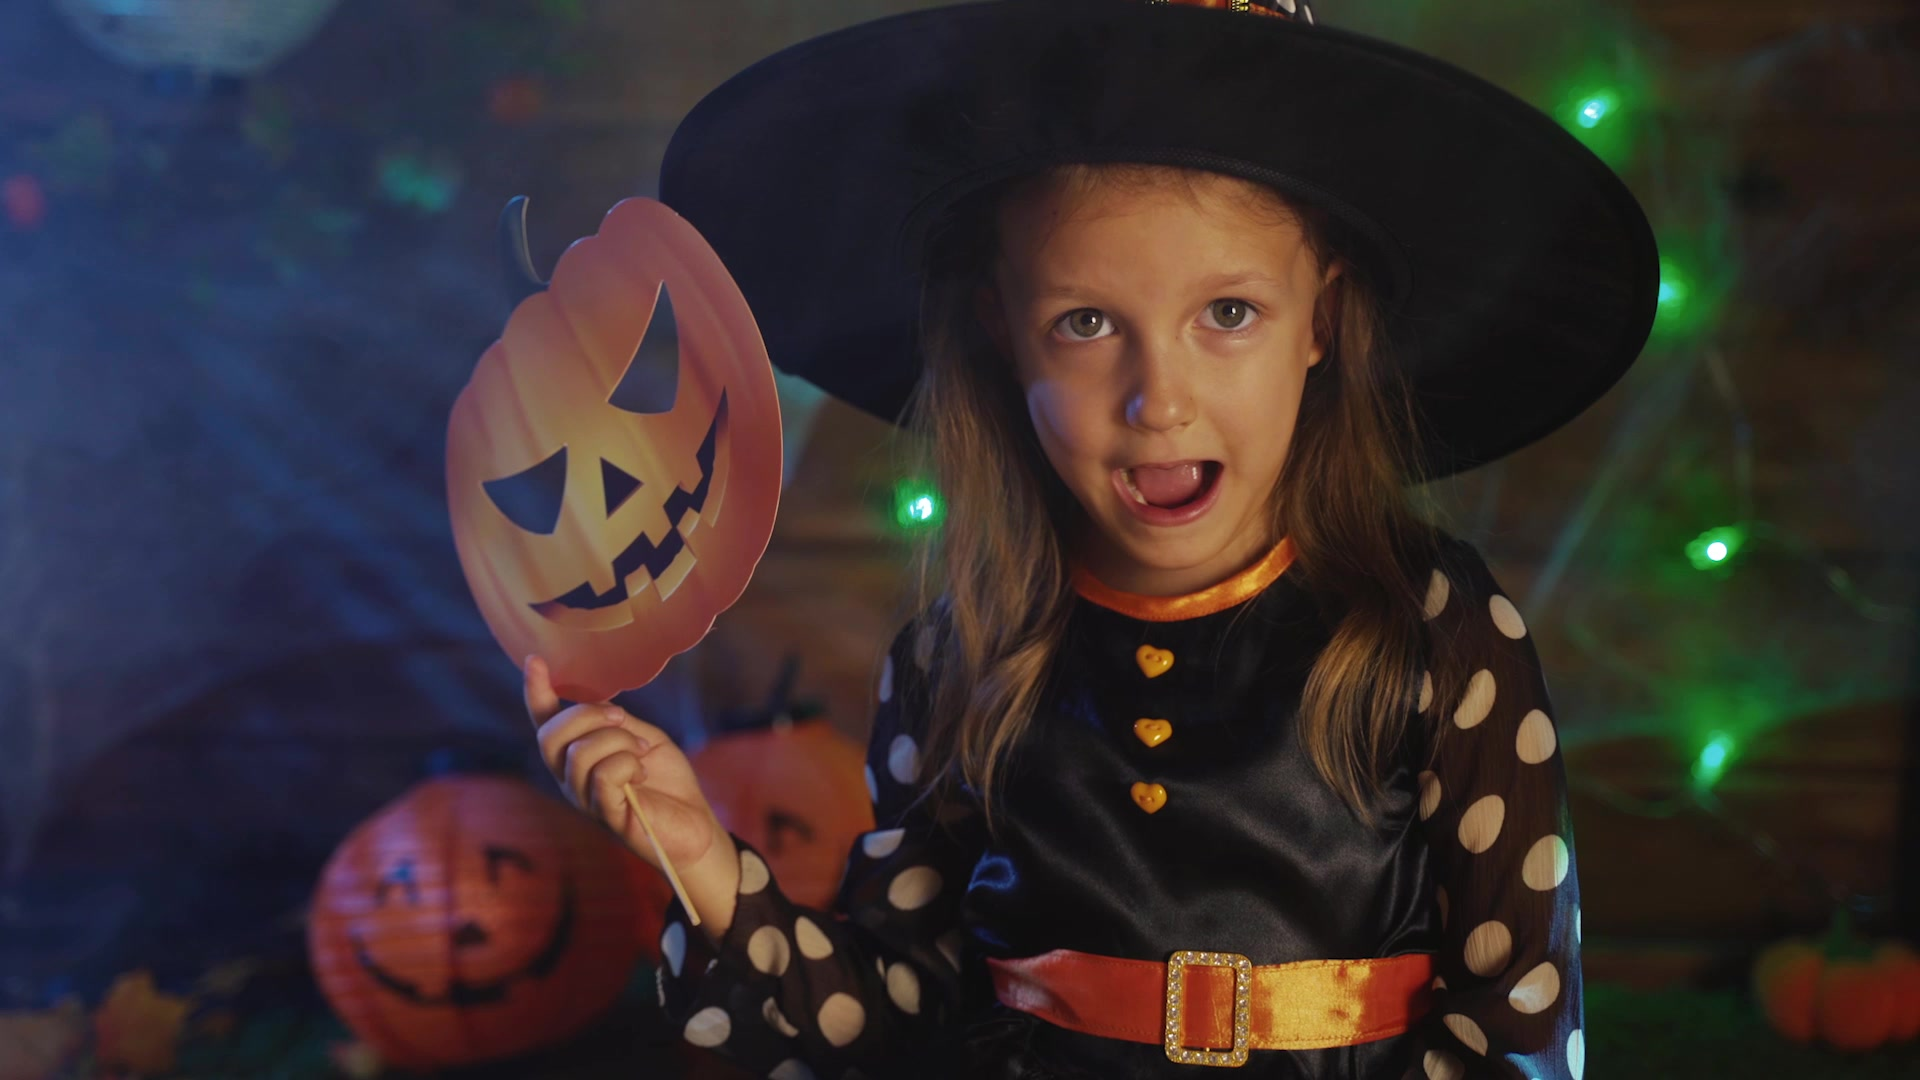 With Halloween fast approaching, we'd like to urge everyone to stay safe. Here are some tips to keep your kiddos safe and still have a fun Halloween!